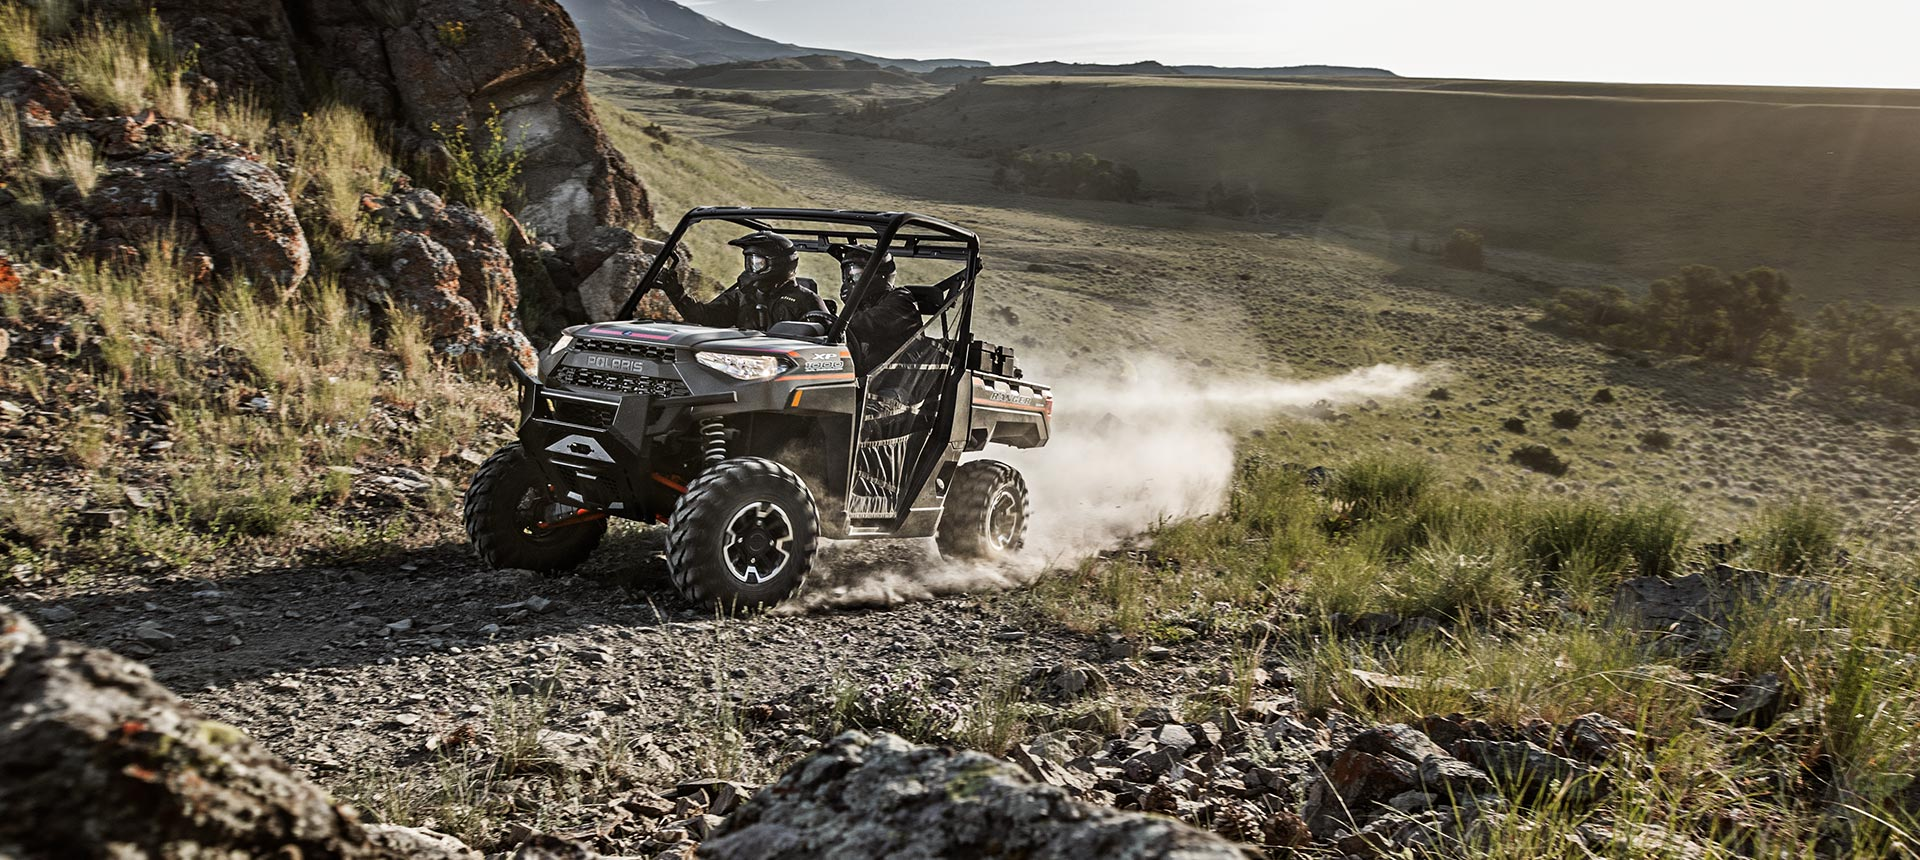 2019 Polaris Ranger XP 1000 EPS in Three Lakes, Wisconsin - Photo 2